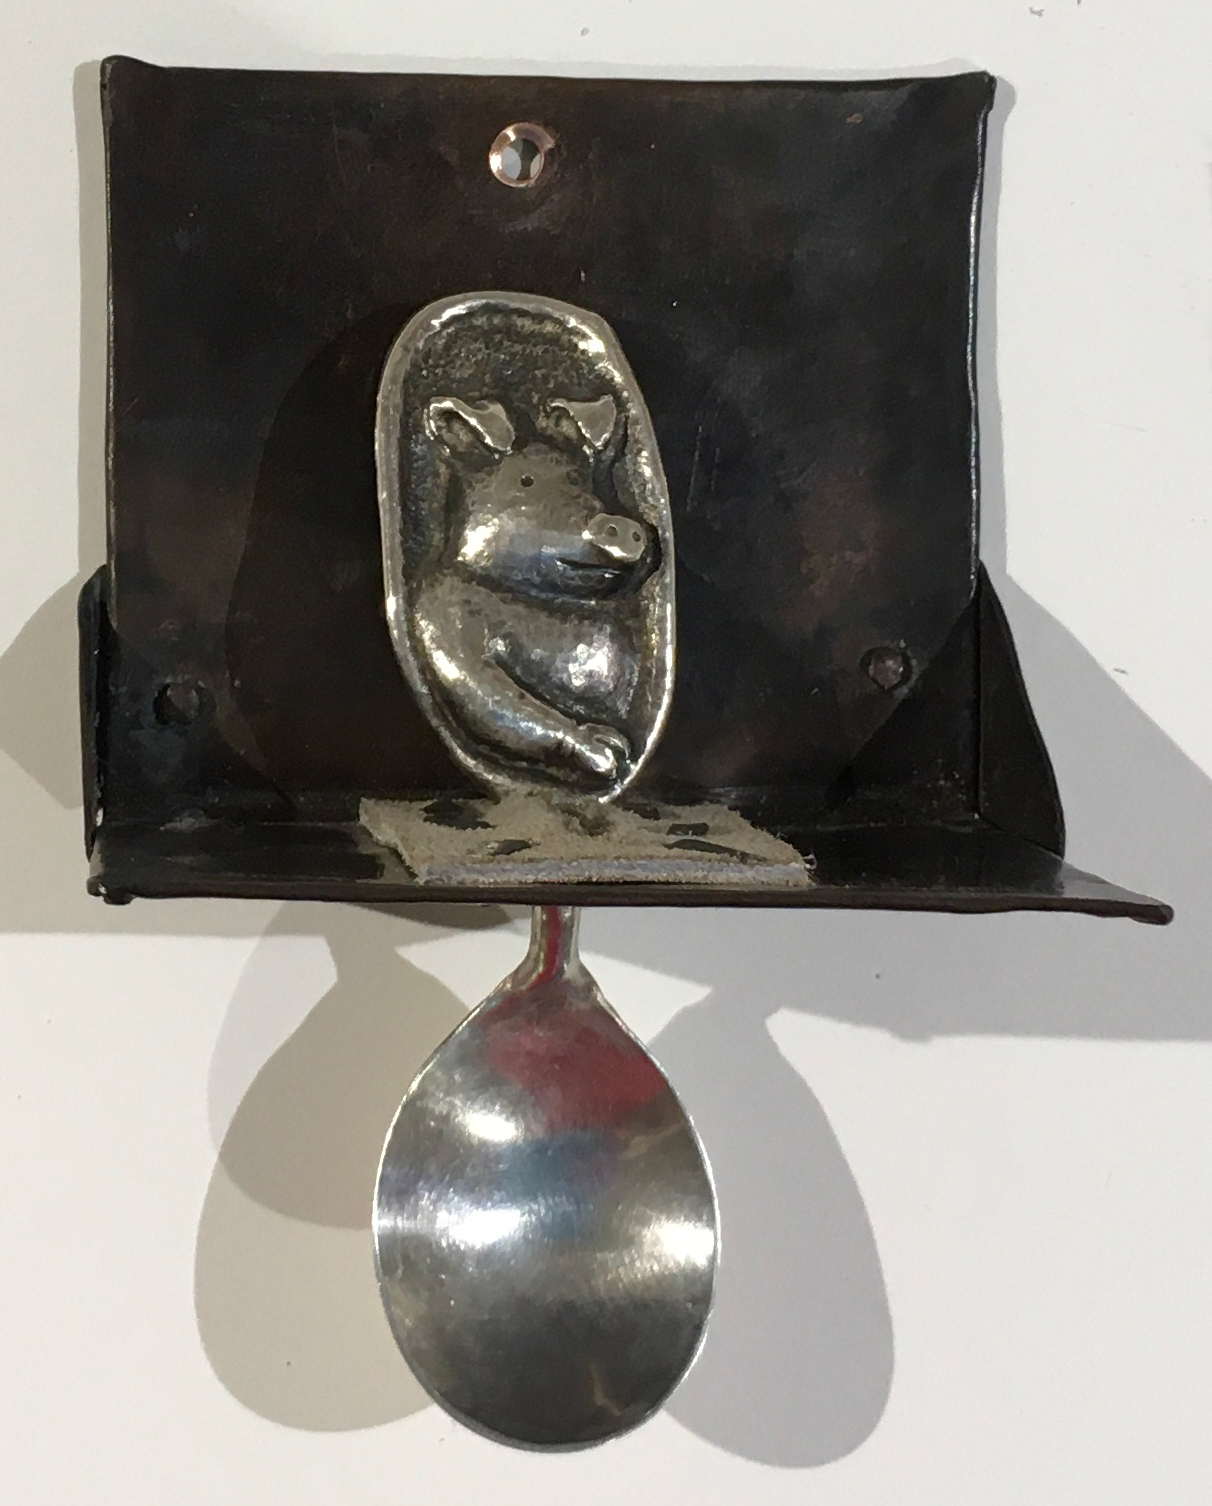 Linda Kelen, Pig Spoon, 2018, sterling silver, 3x3x2.5 inches, collection of the artist